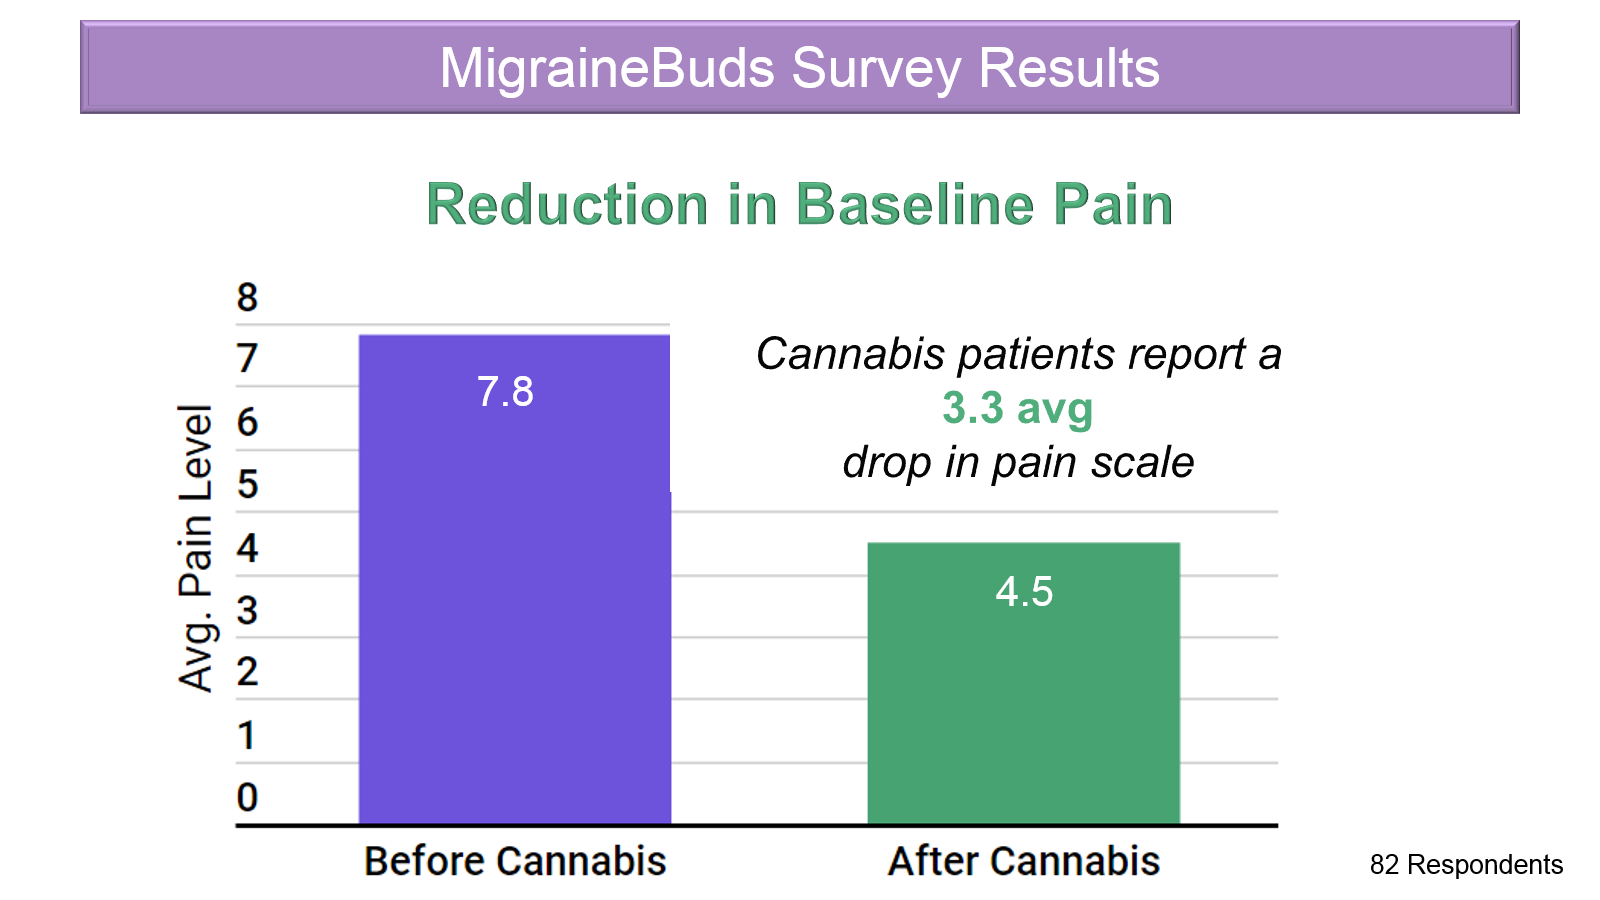 Survey Results - reduction in baseline pain after cannabis